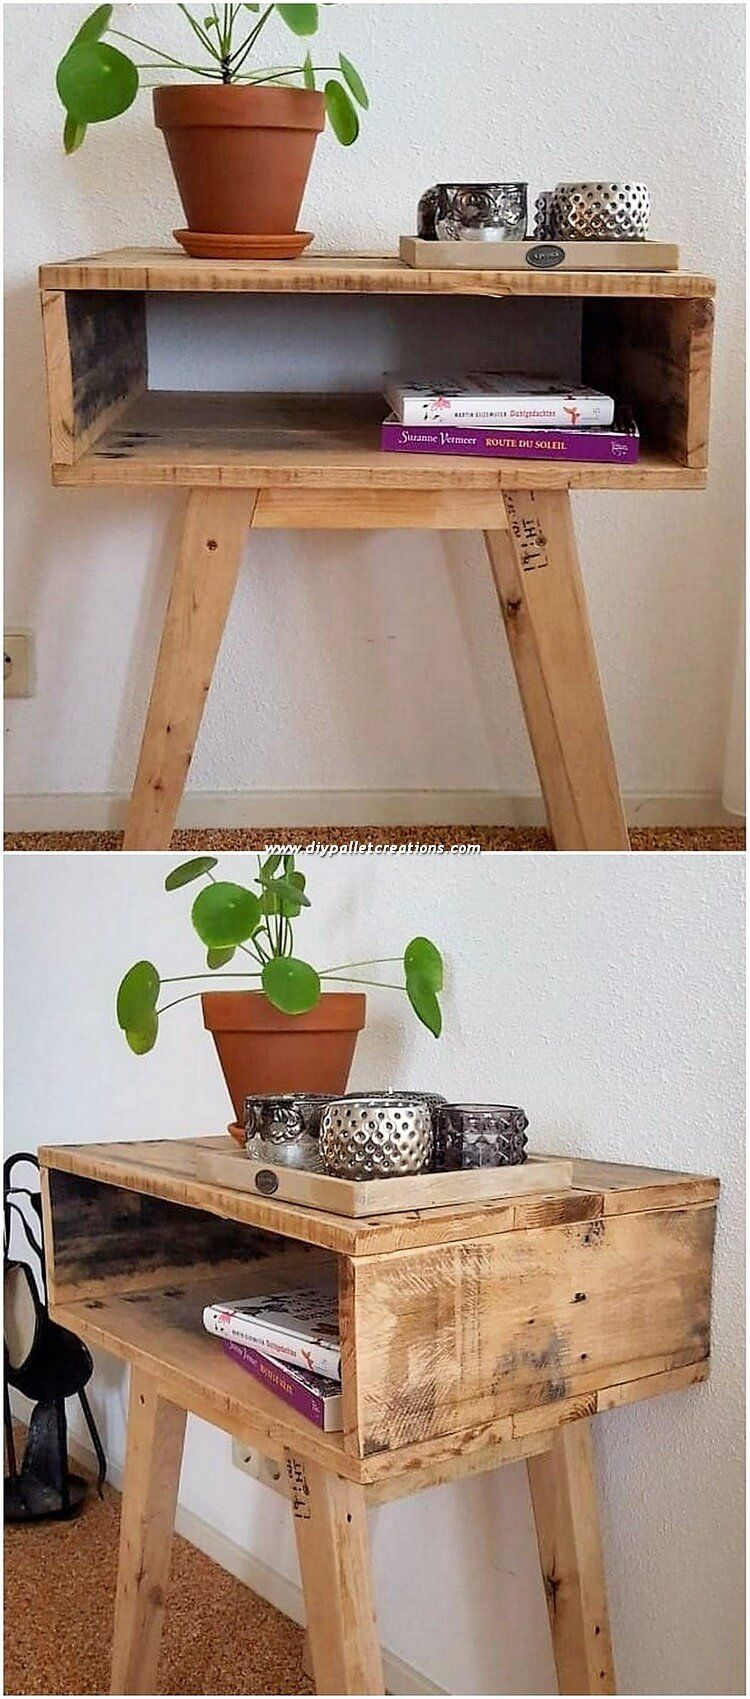 Breath Taking Diy Ideas With Recycled Wooden Pallets Pallet Diy Diy Pallet Wall Pallet Decor